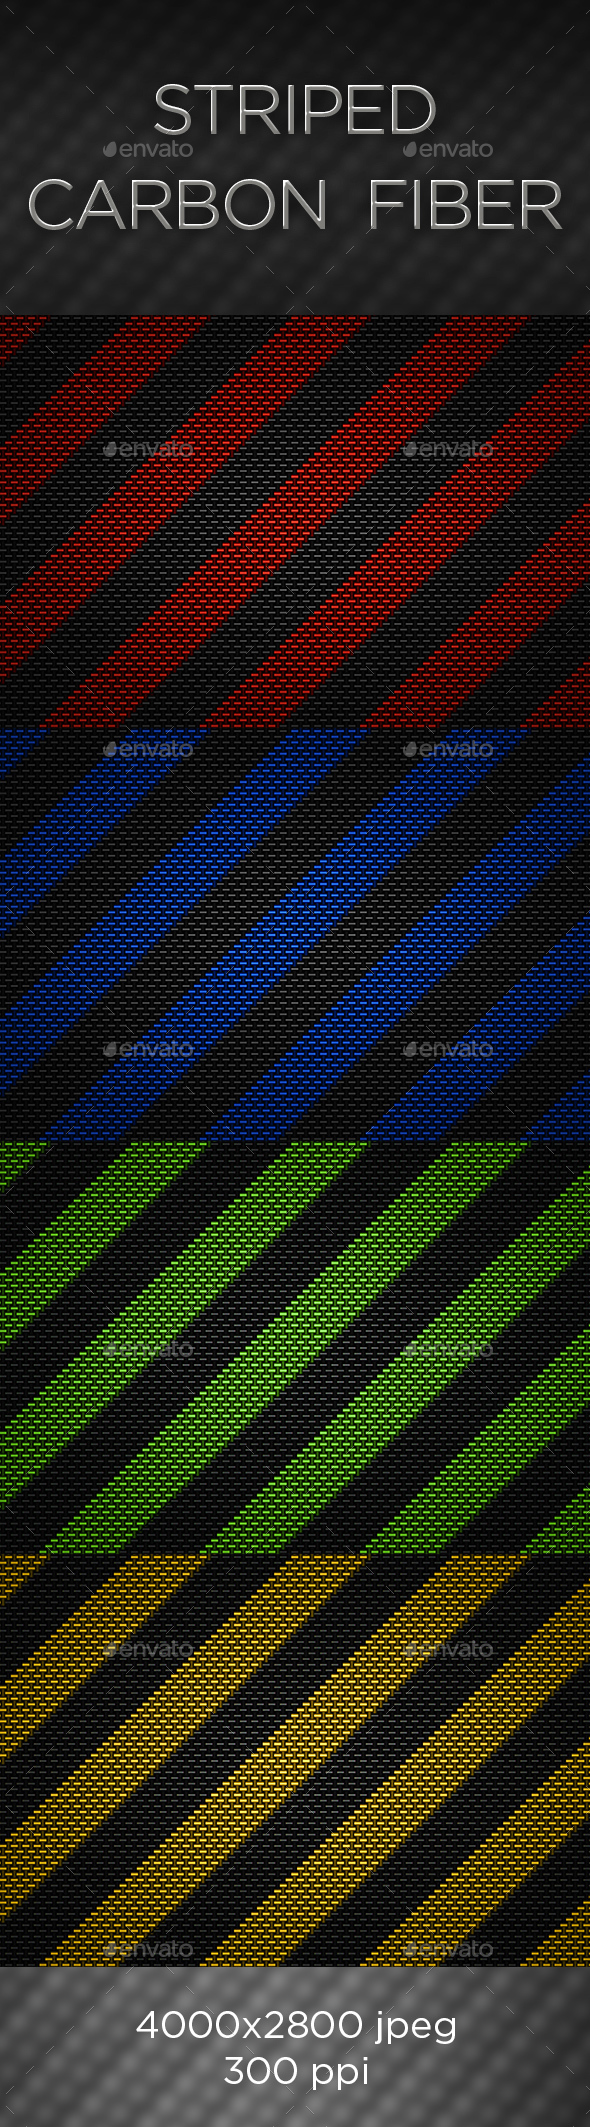 Striped Carbon Fiber Textures - Abstract Backgrounds